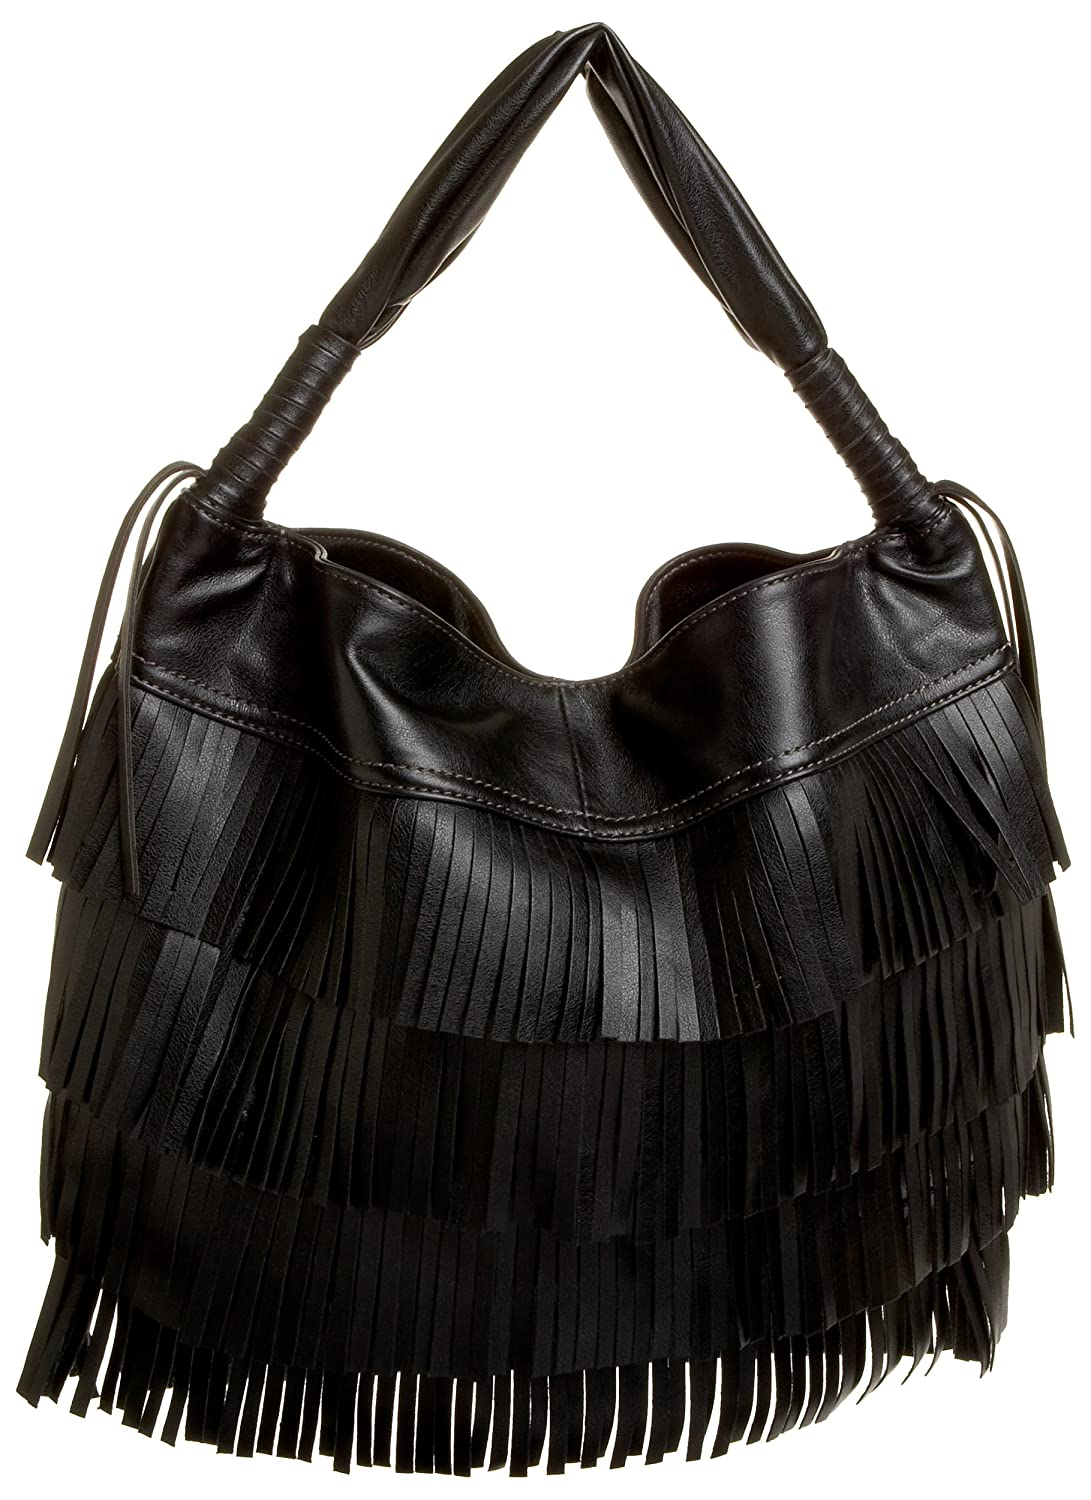 Melie Bianco Fringe Hobo - Free Overnight Shipping &amp; Return Shipping: Endless.com from endless.com